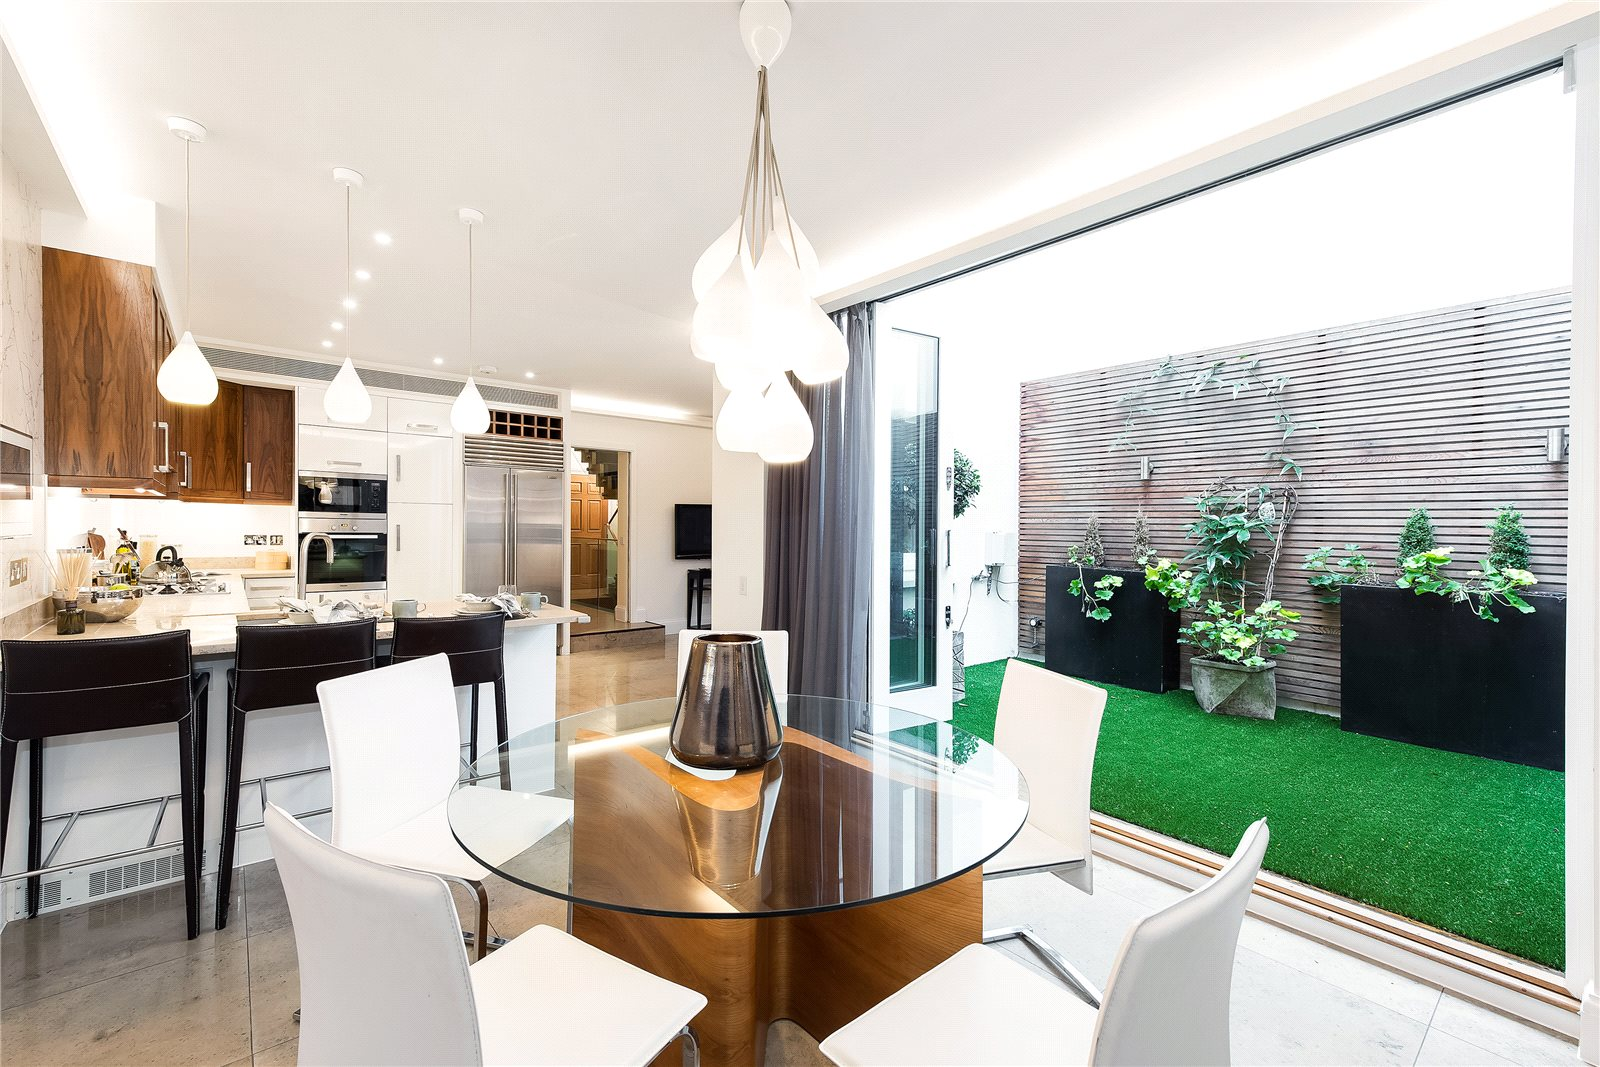 Single Family Home for Sale at Clareville Street, South Kensington, London, SW7 South Kensington, London, England